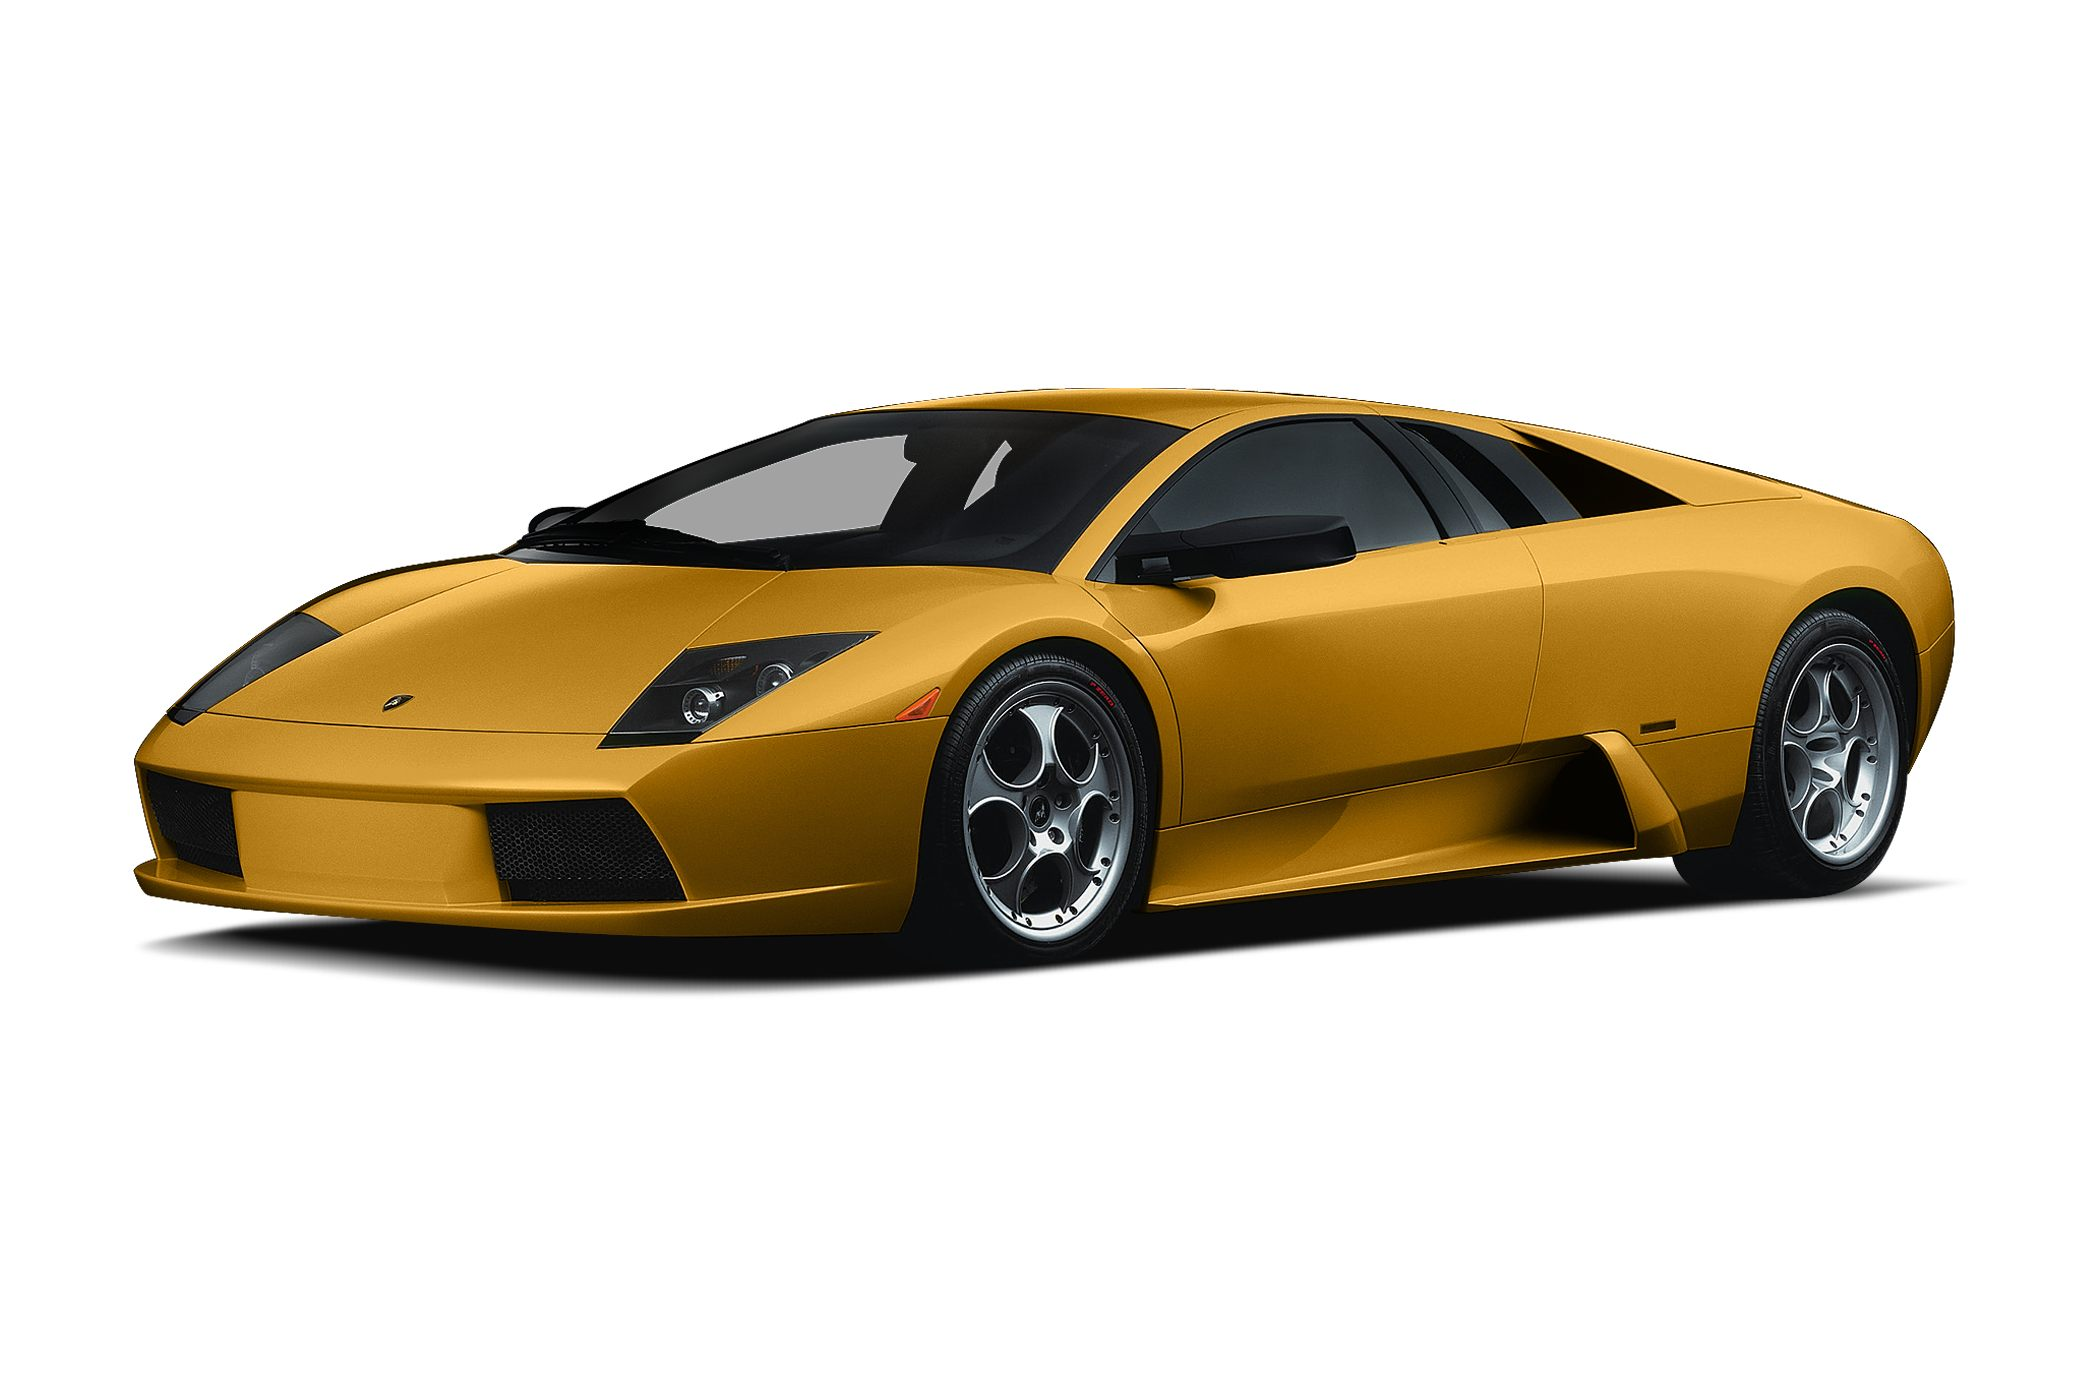 2007 Lamborghini Murcielago